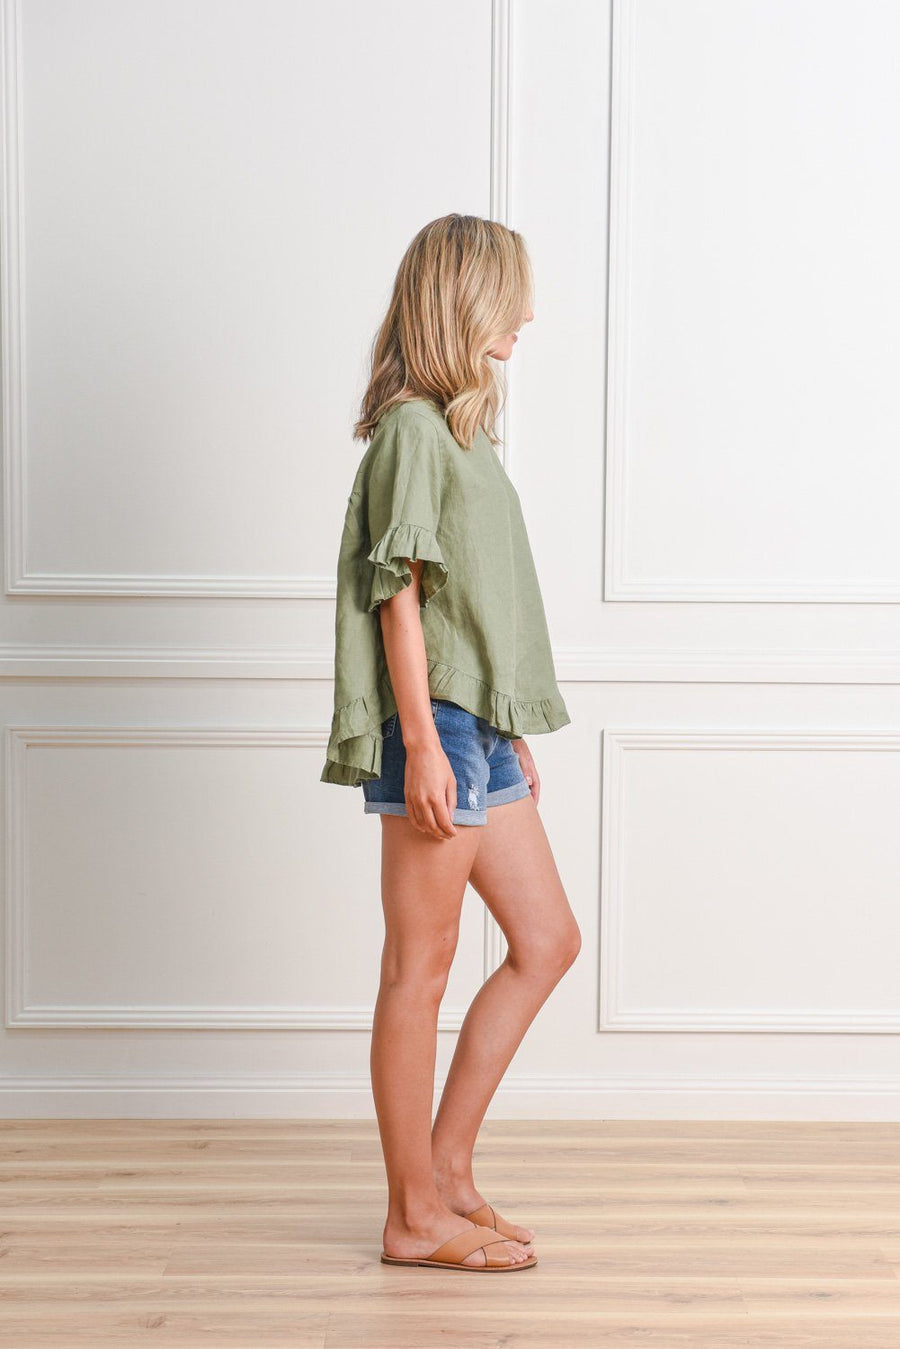 Belle Top | Khaki Top Gray.Label